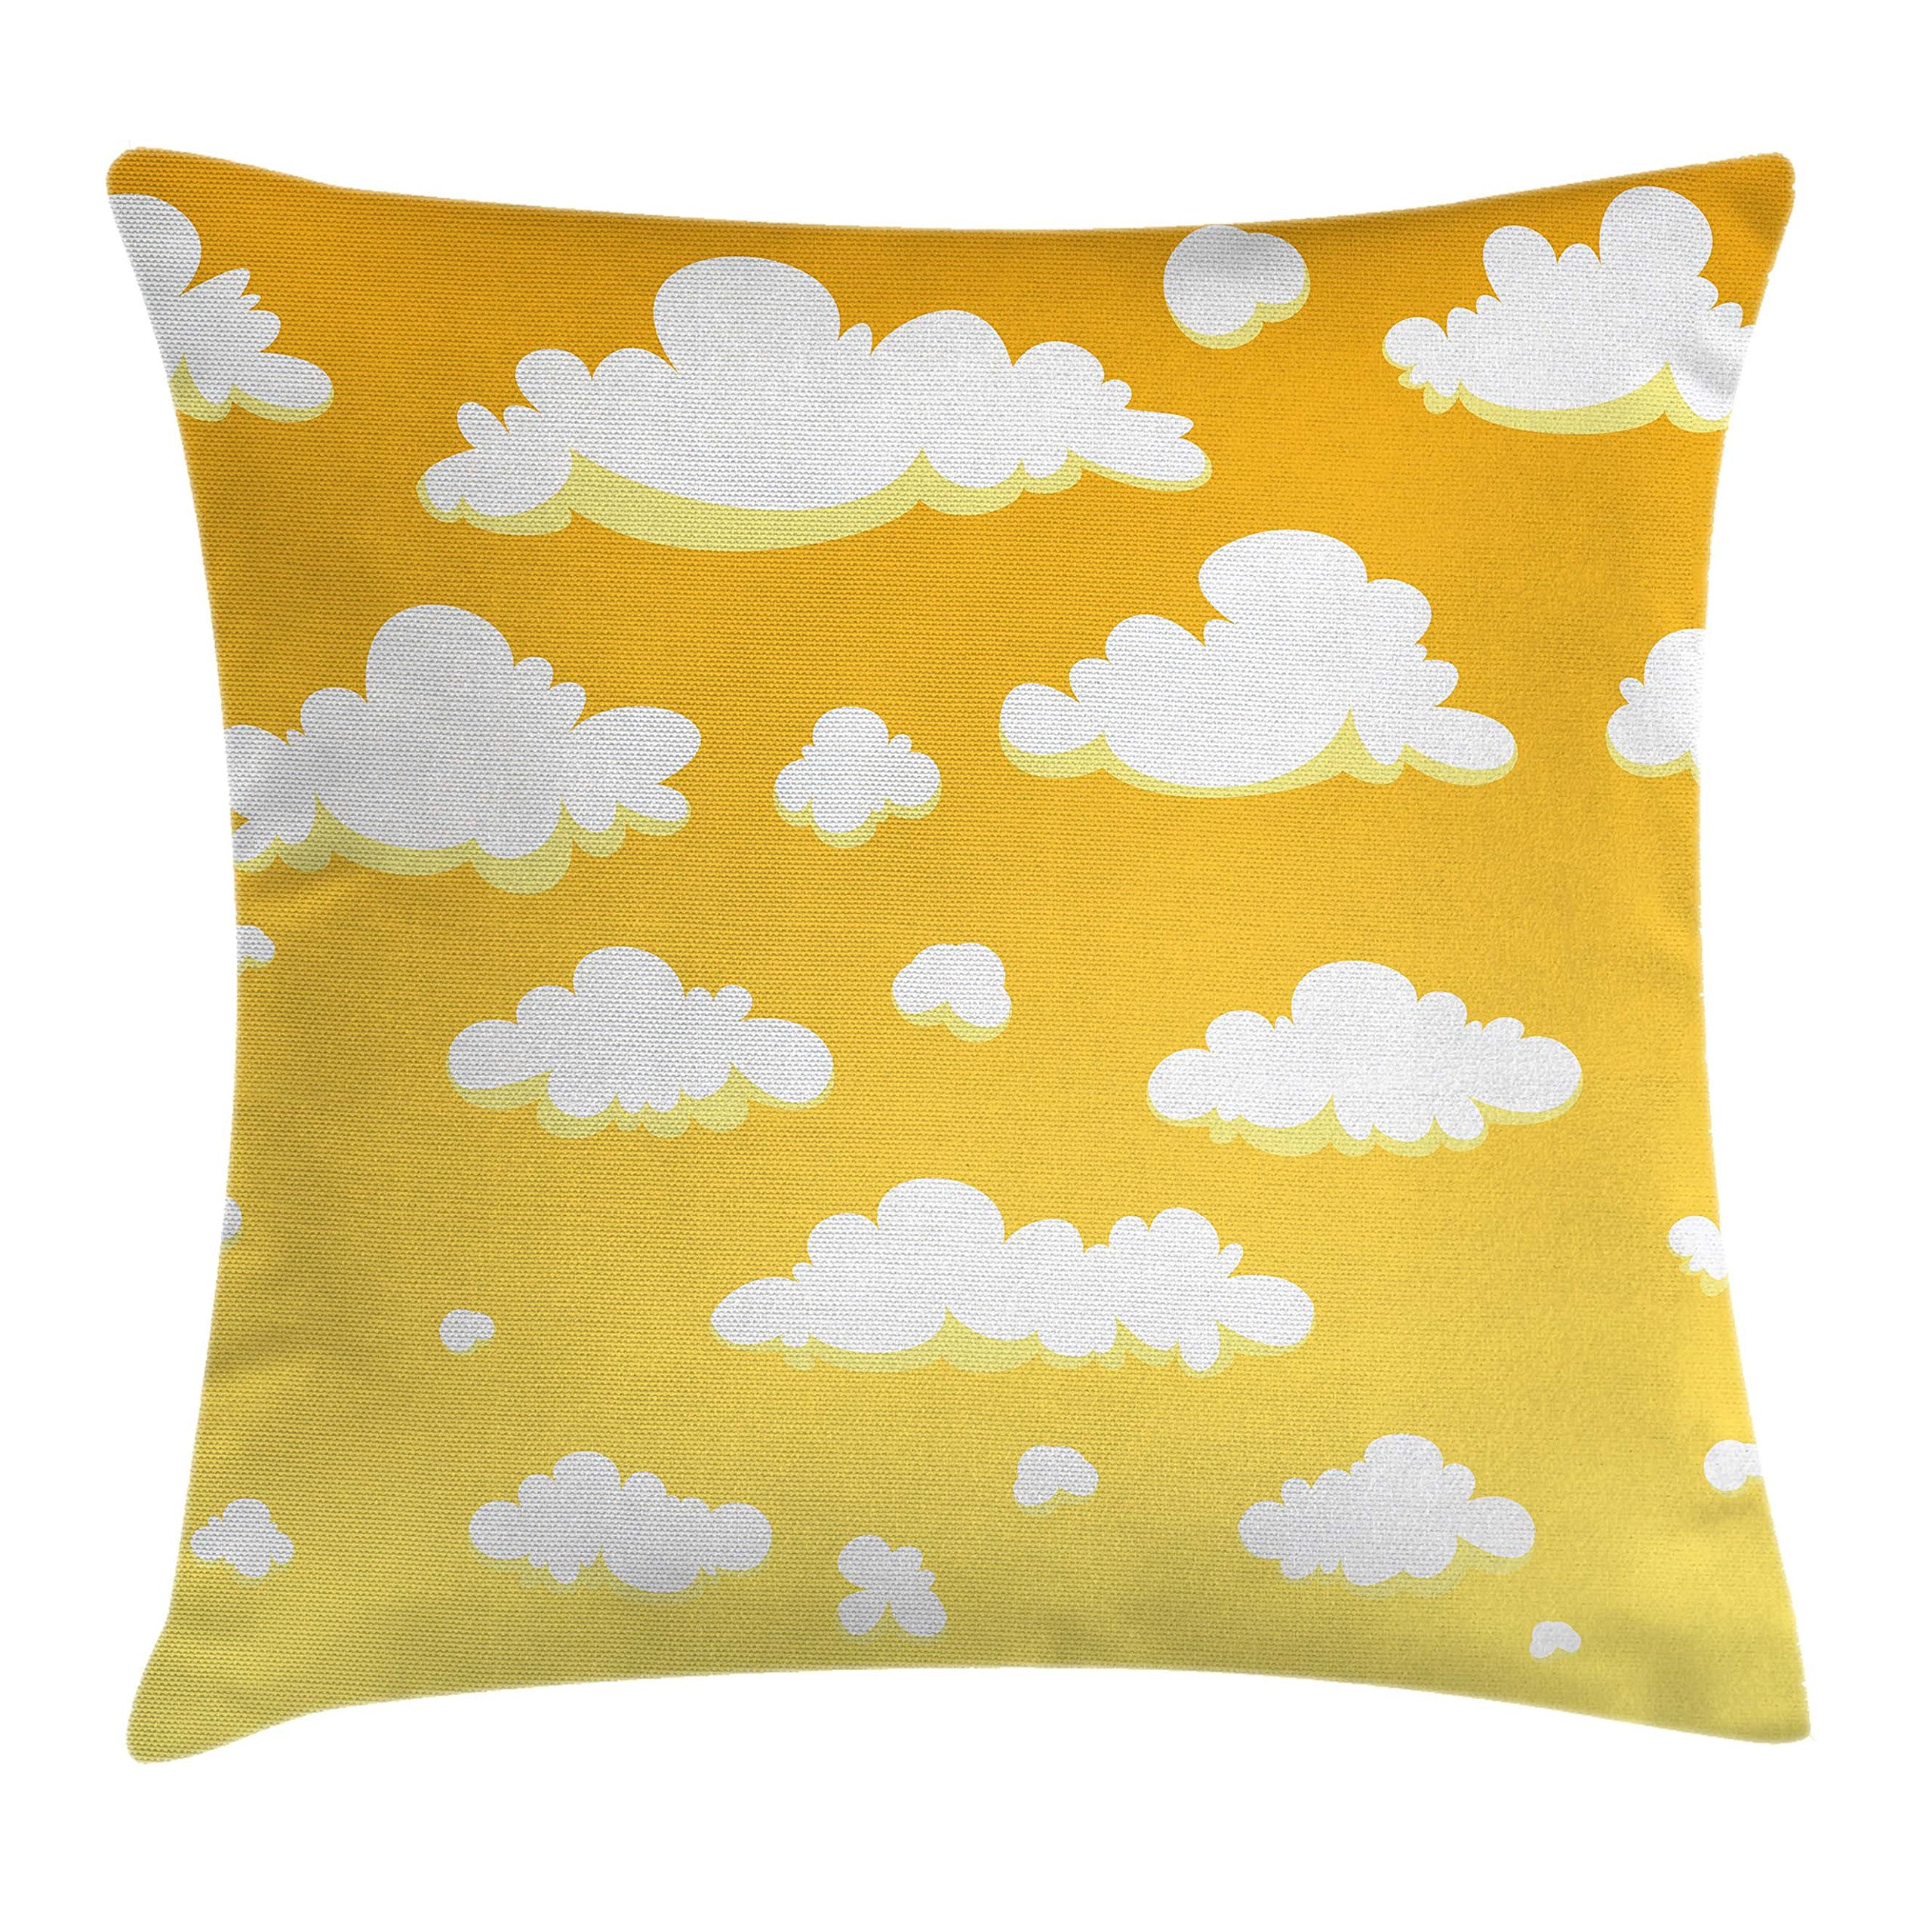 Ambesonne Yellow and White Throw Pillow Cushion Cover, Kids Room Theme Cartoon Style Clouds in The Sky Atmosphere Warm Climate, Decorative Square Accent Pillow Case, 18 X 18 inches, Yellow White